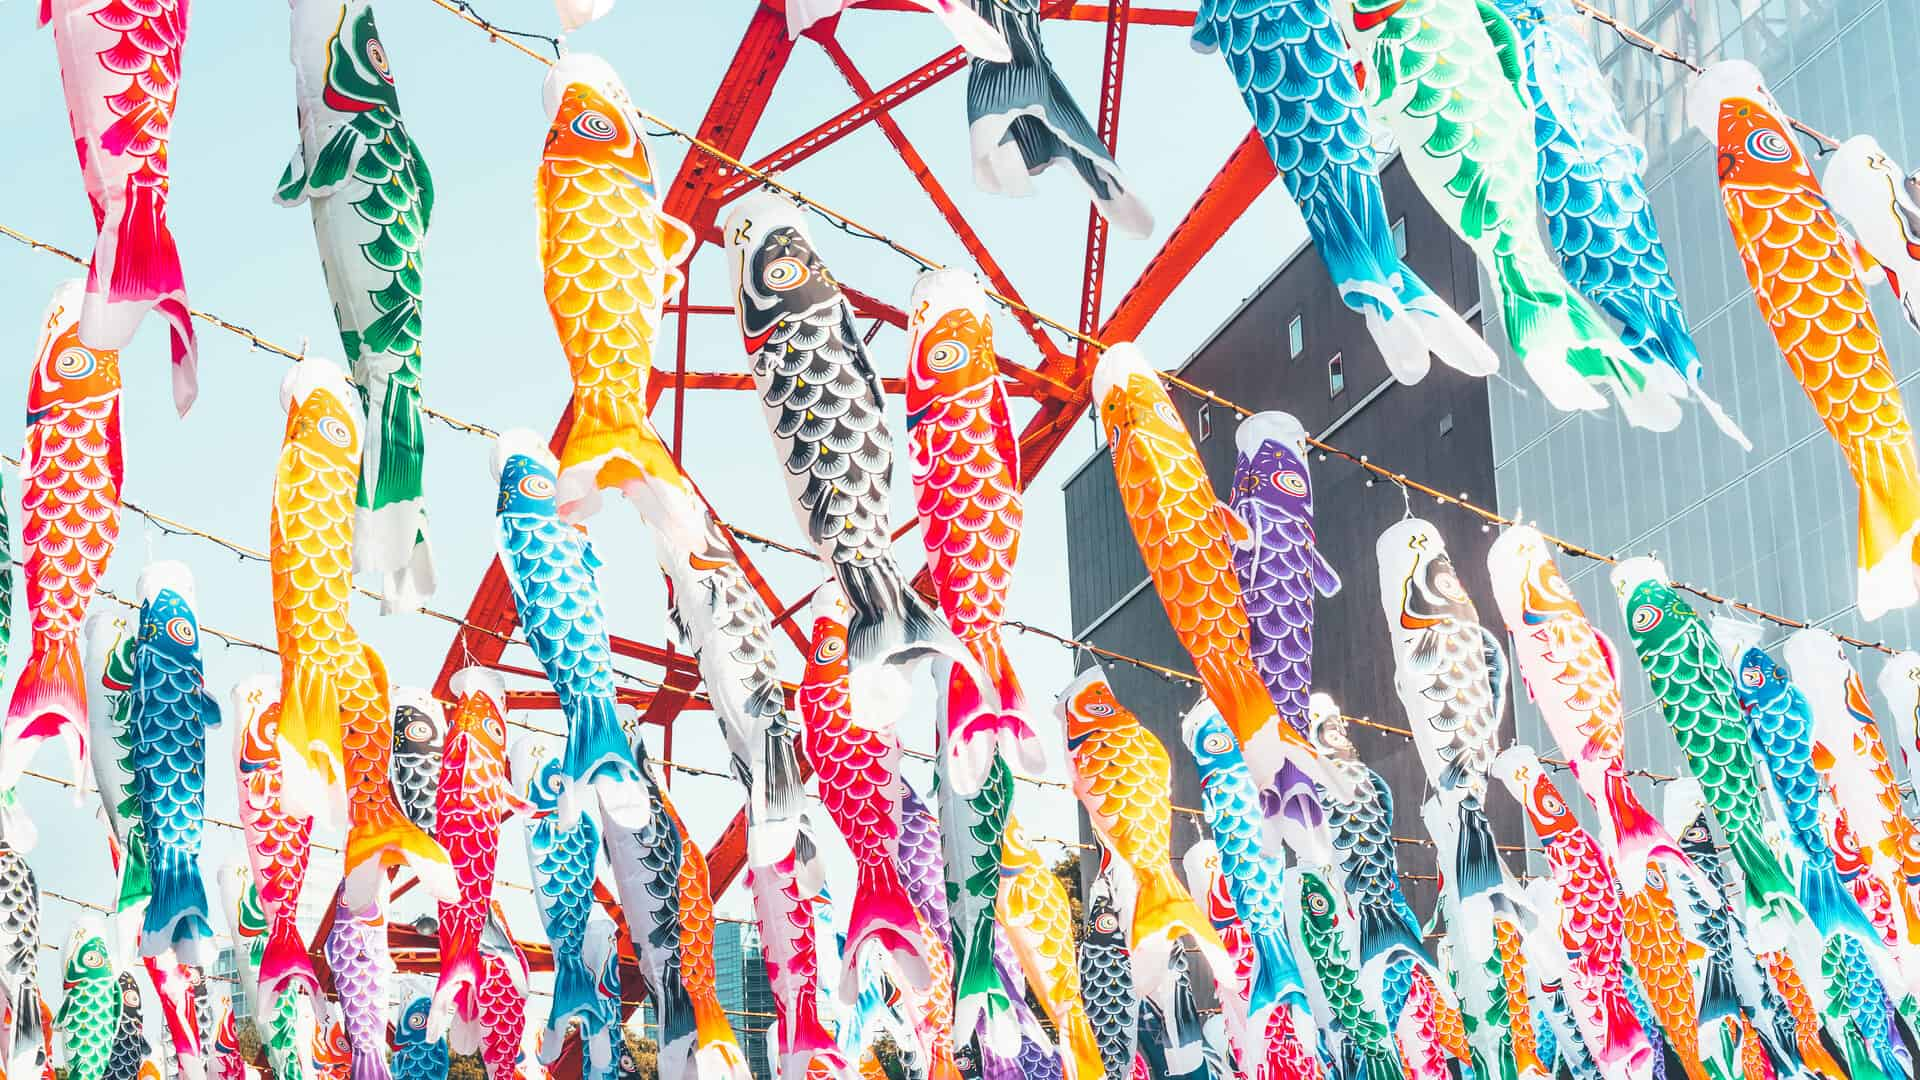 Coloful carp flags hanging on Children's Day in Tokyo, Japan